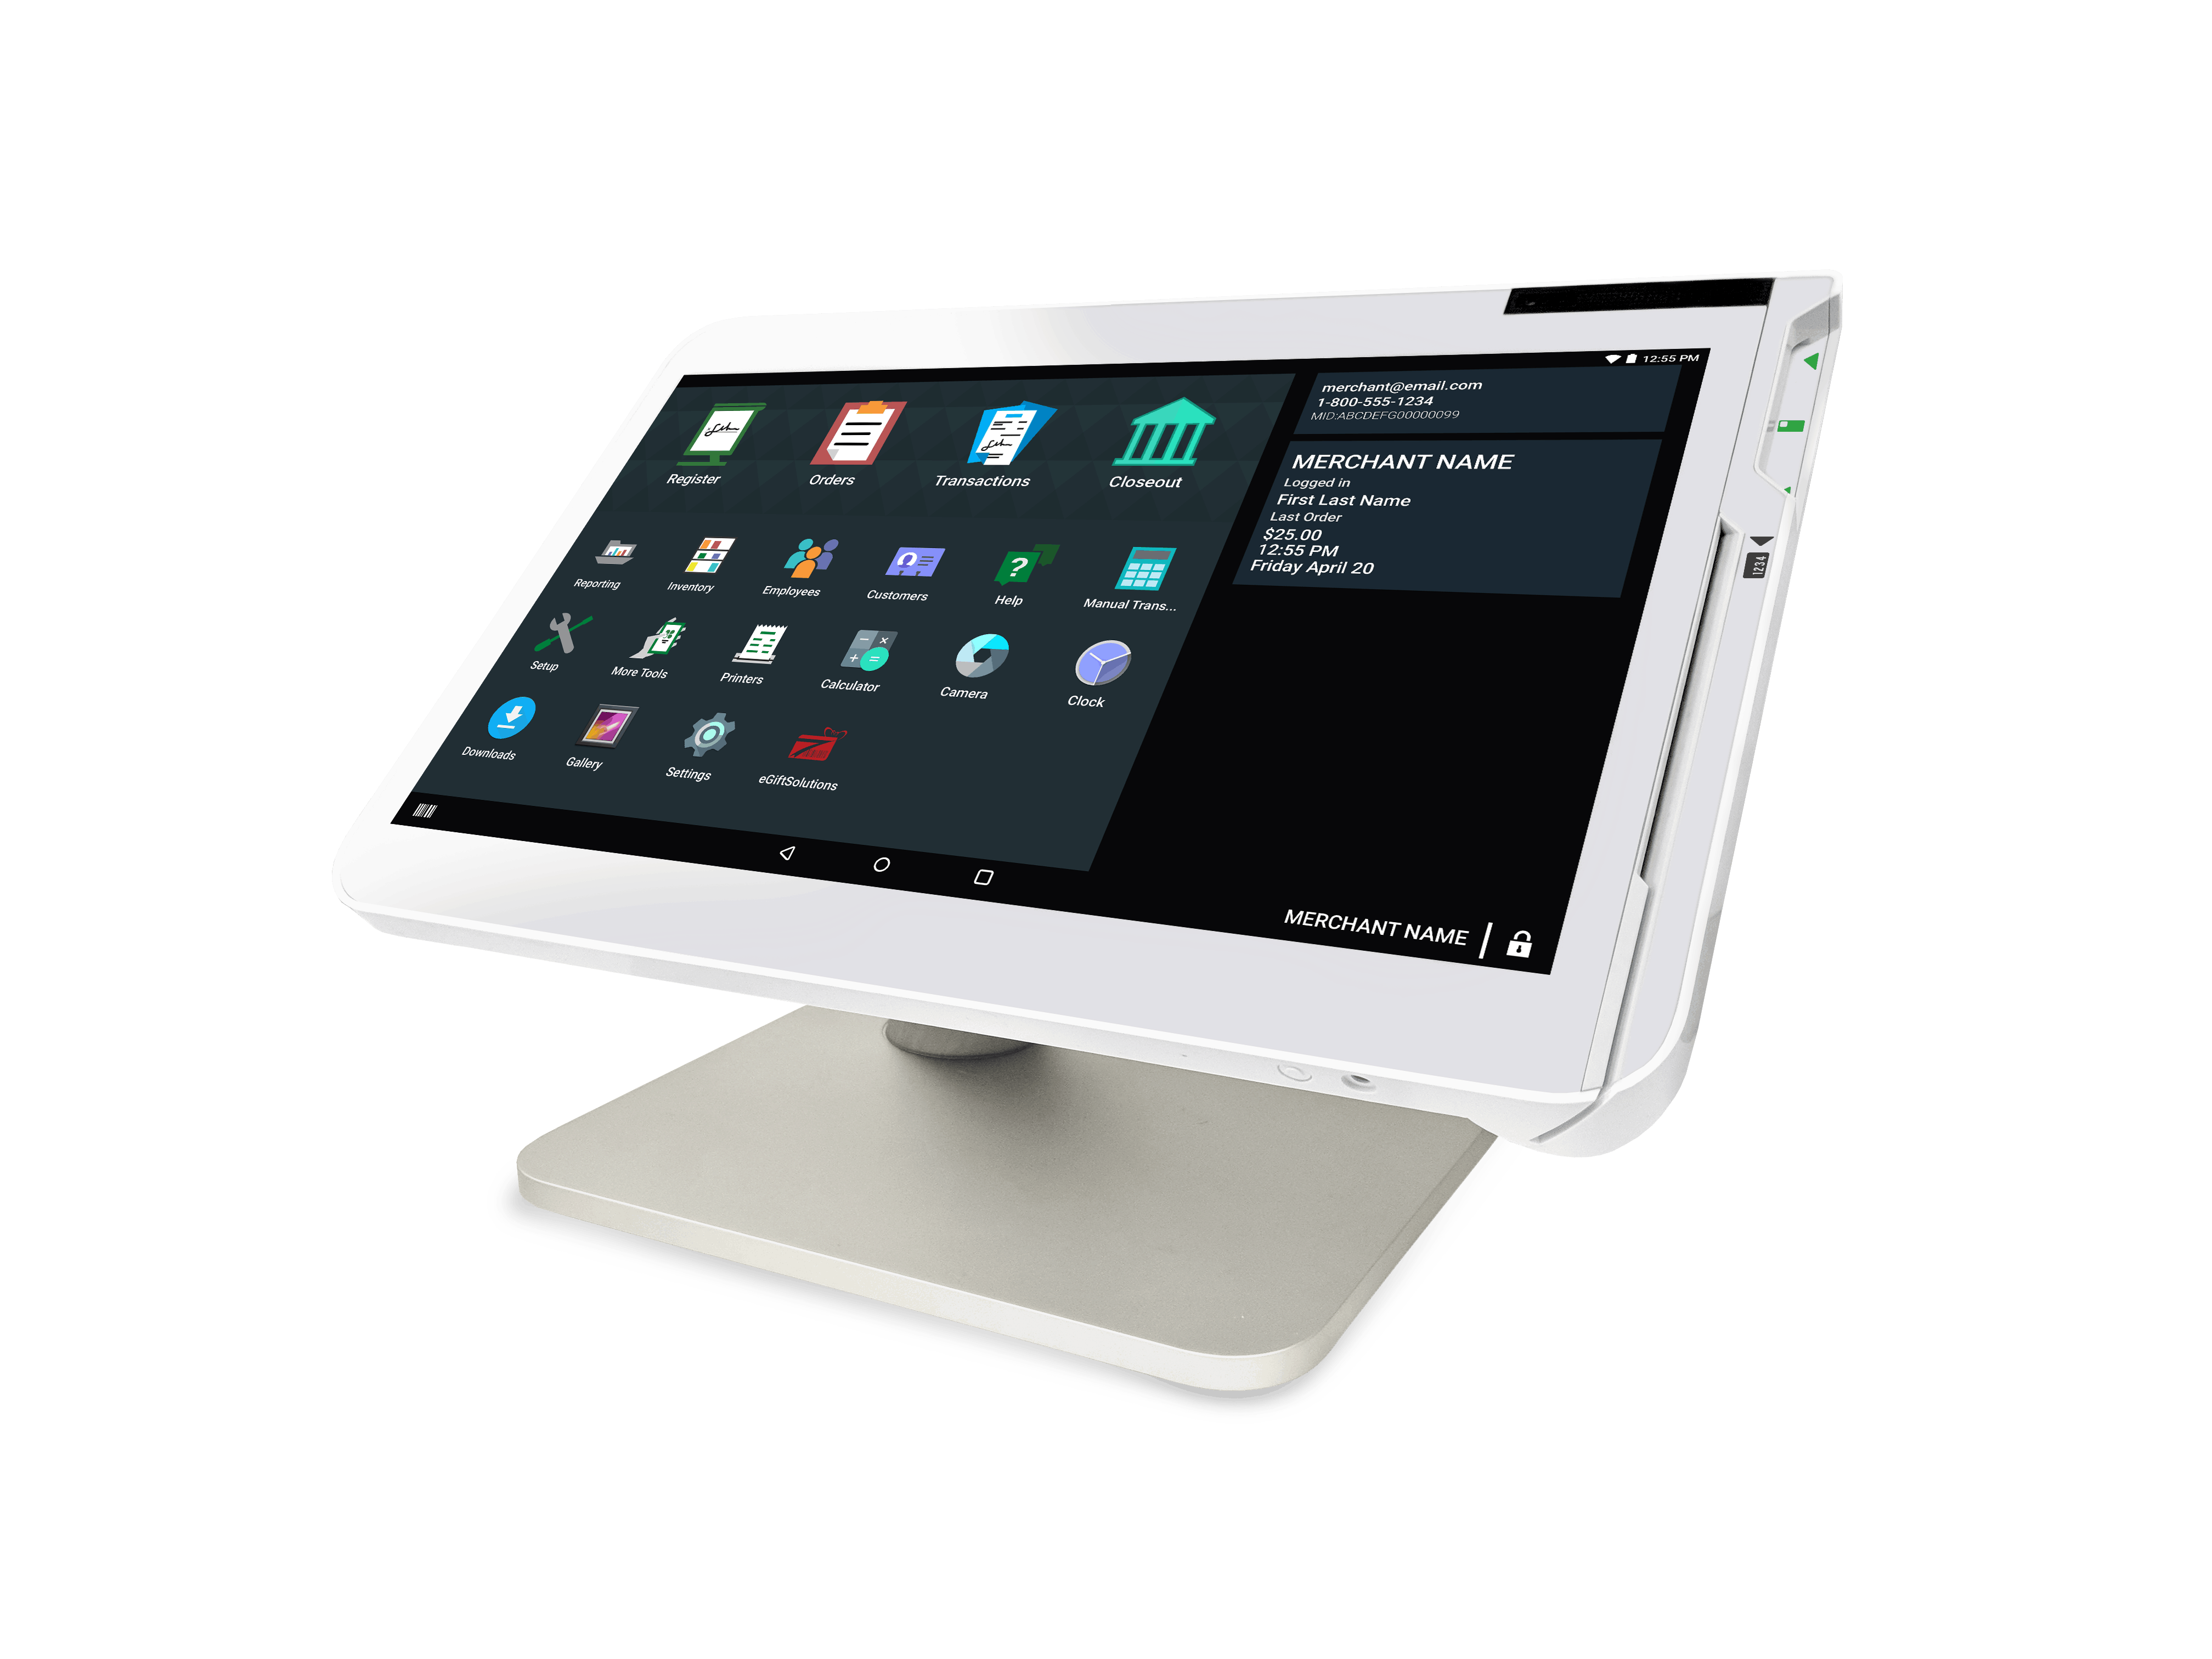 Picture of Clover POS System